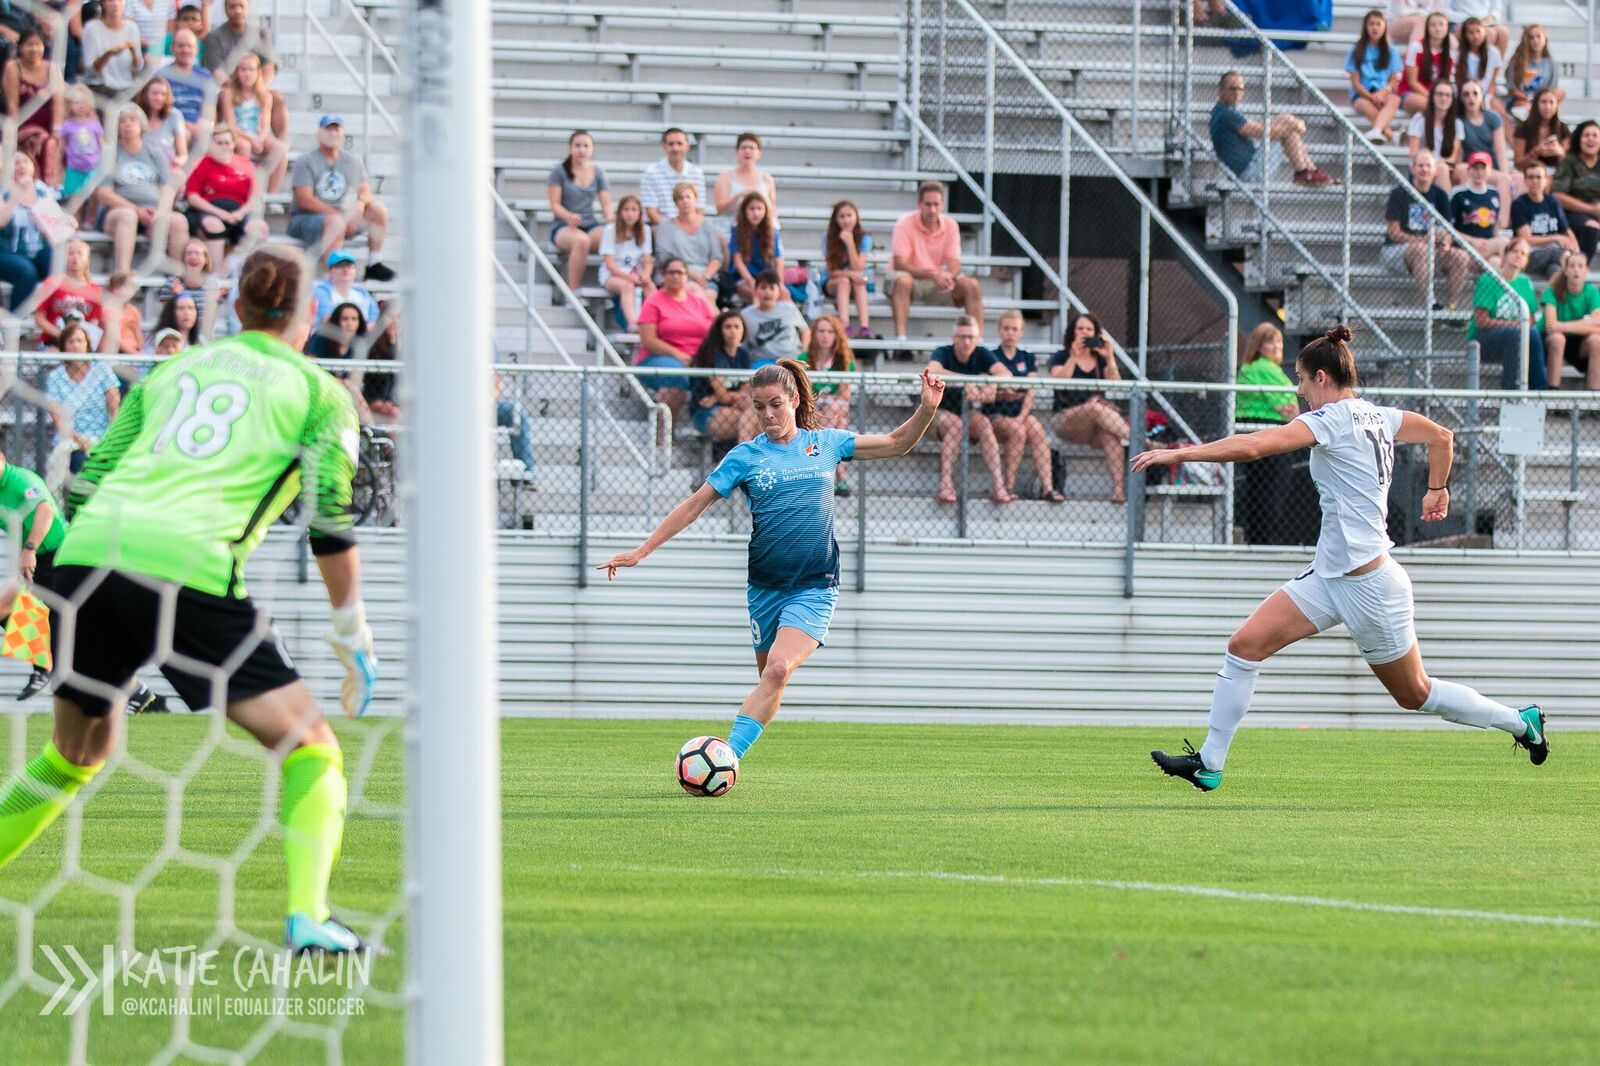 Kelley O'Hara pushing forward against FC Kansas City (photo copyright Katie Cahalin for The Equalizer)